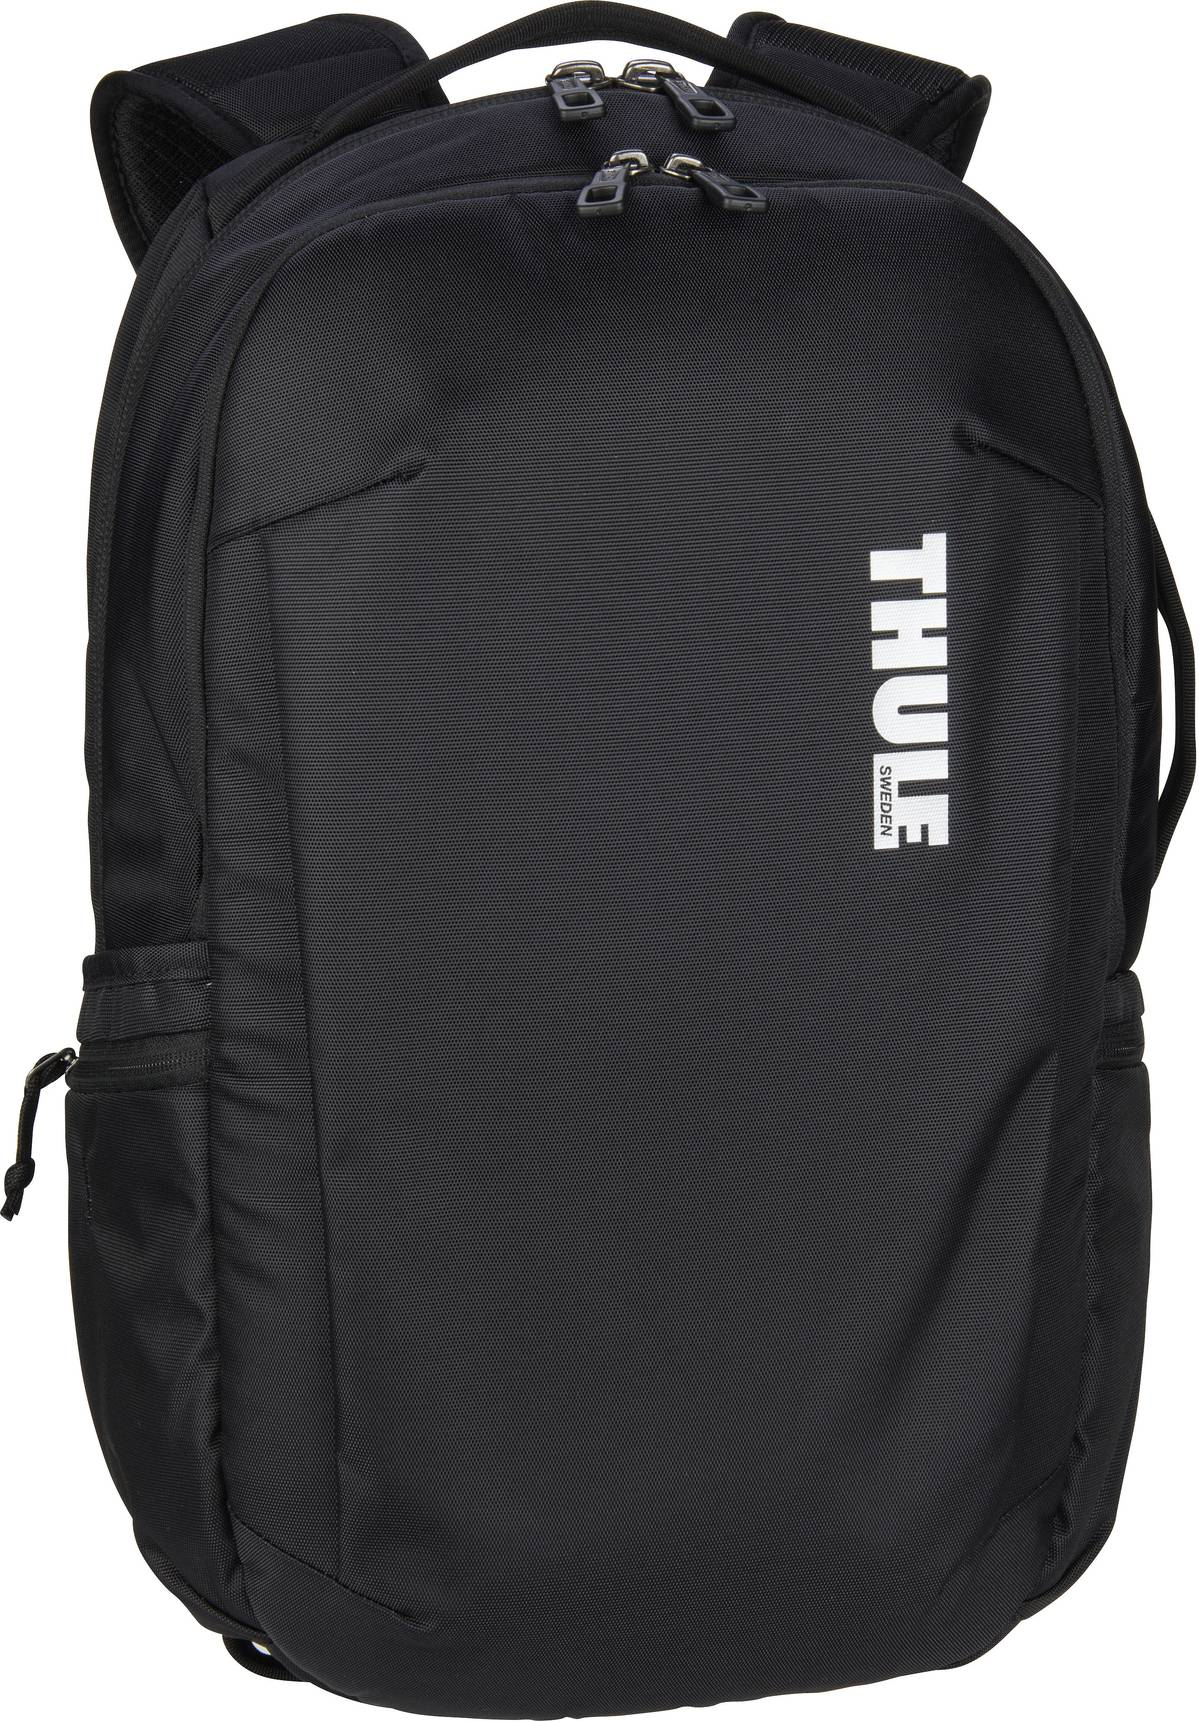 Laptoprucksack Subterra Backpack 30L Black (30 Liter)